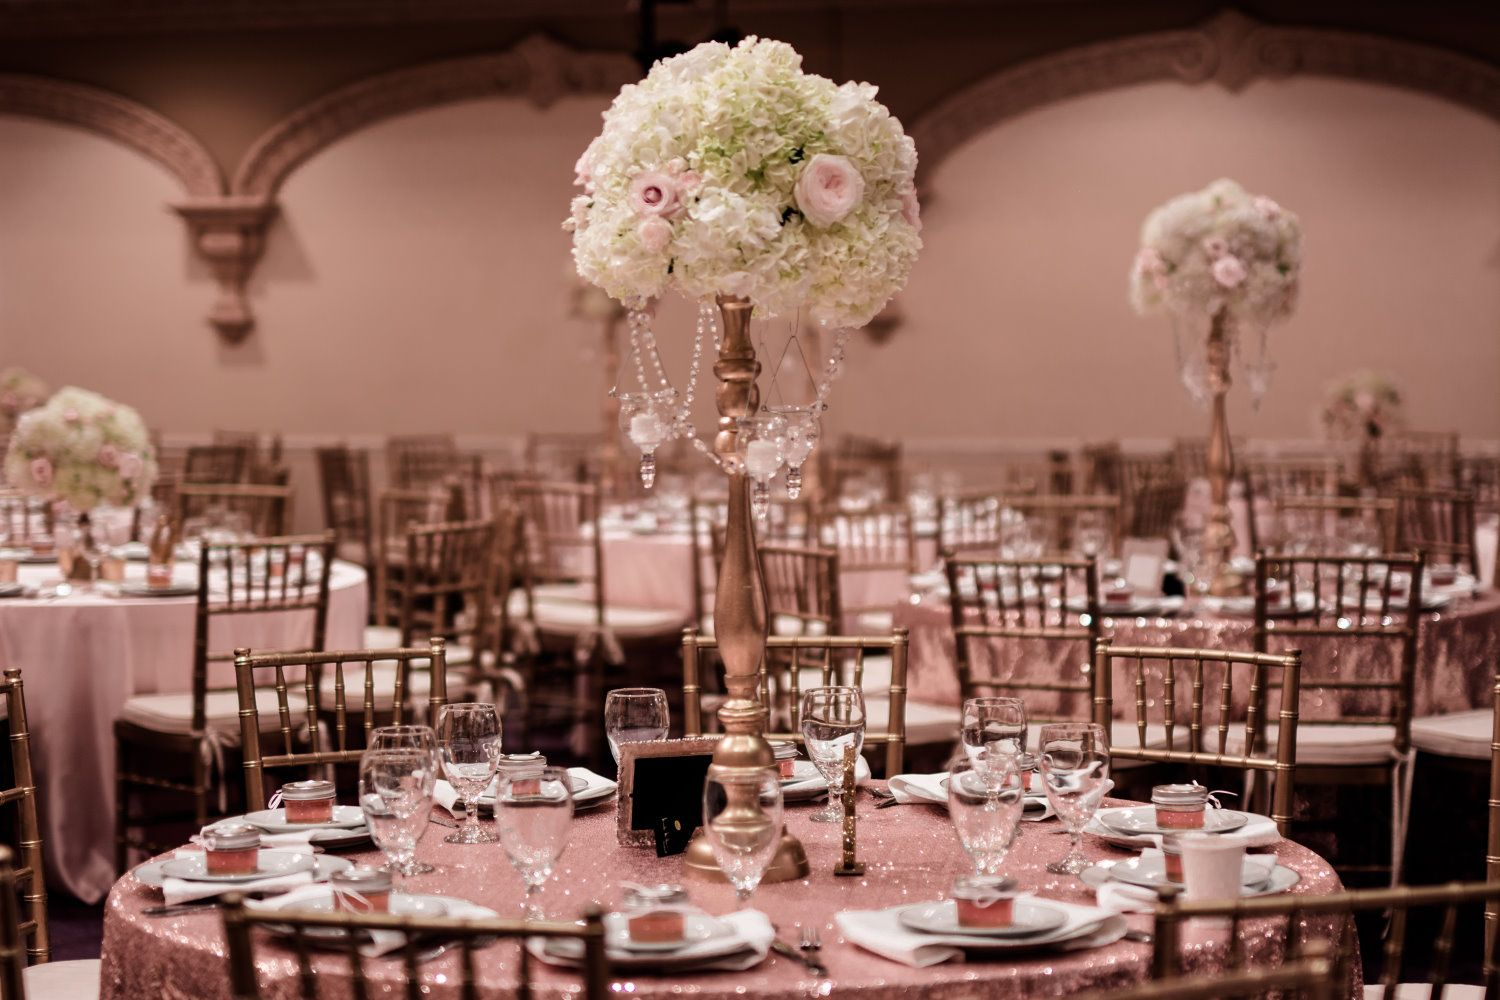 Wedding Decor in 2020 Wedding rentals, Jacksonville fl